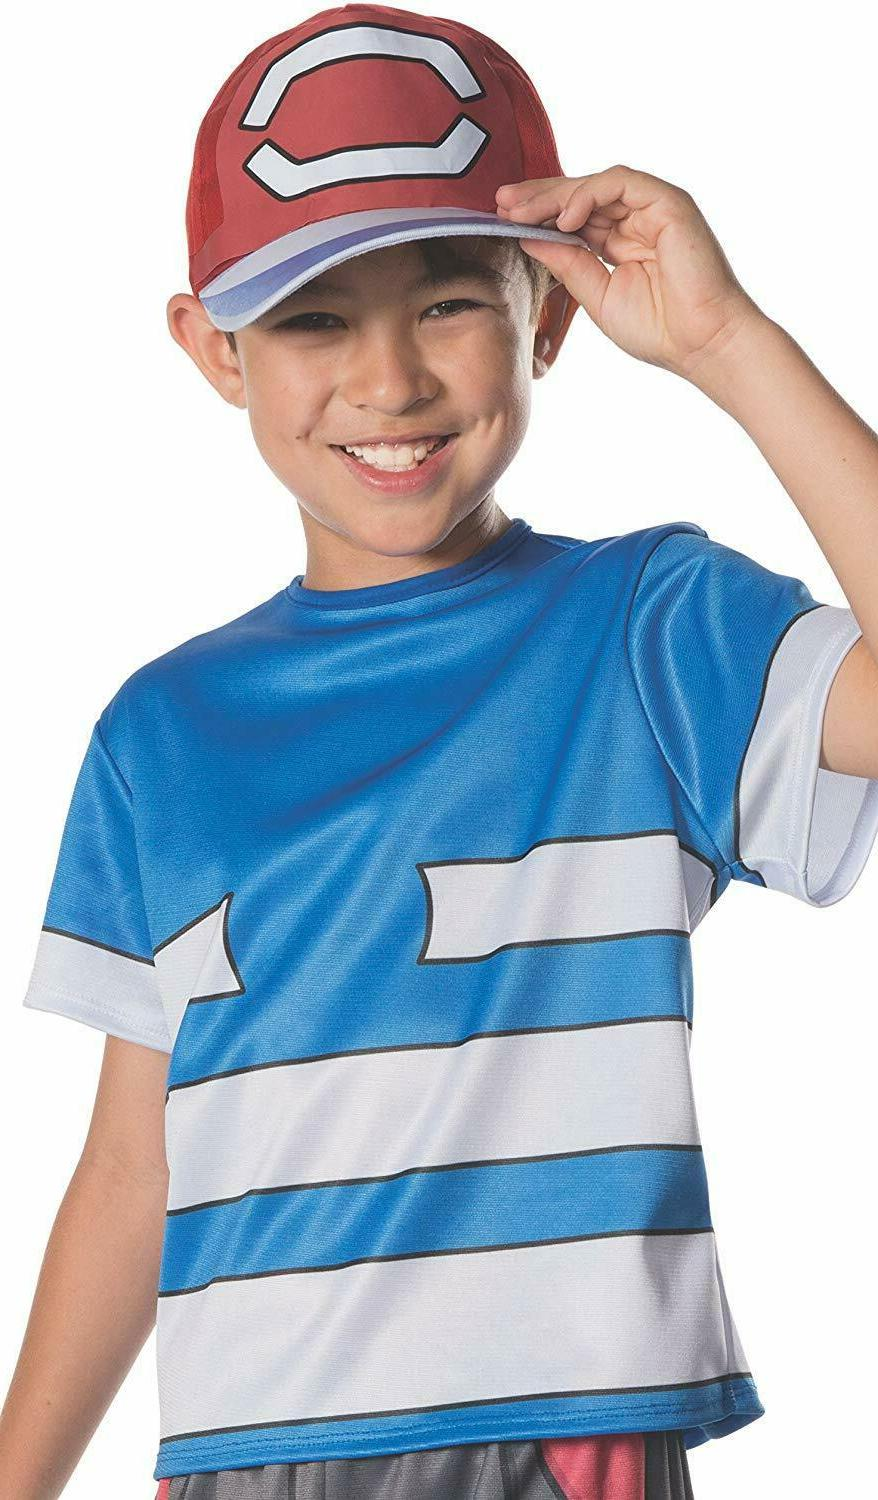 Rubie's Pokemon Child's Costume,